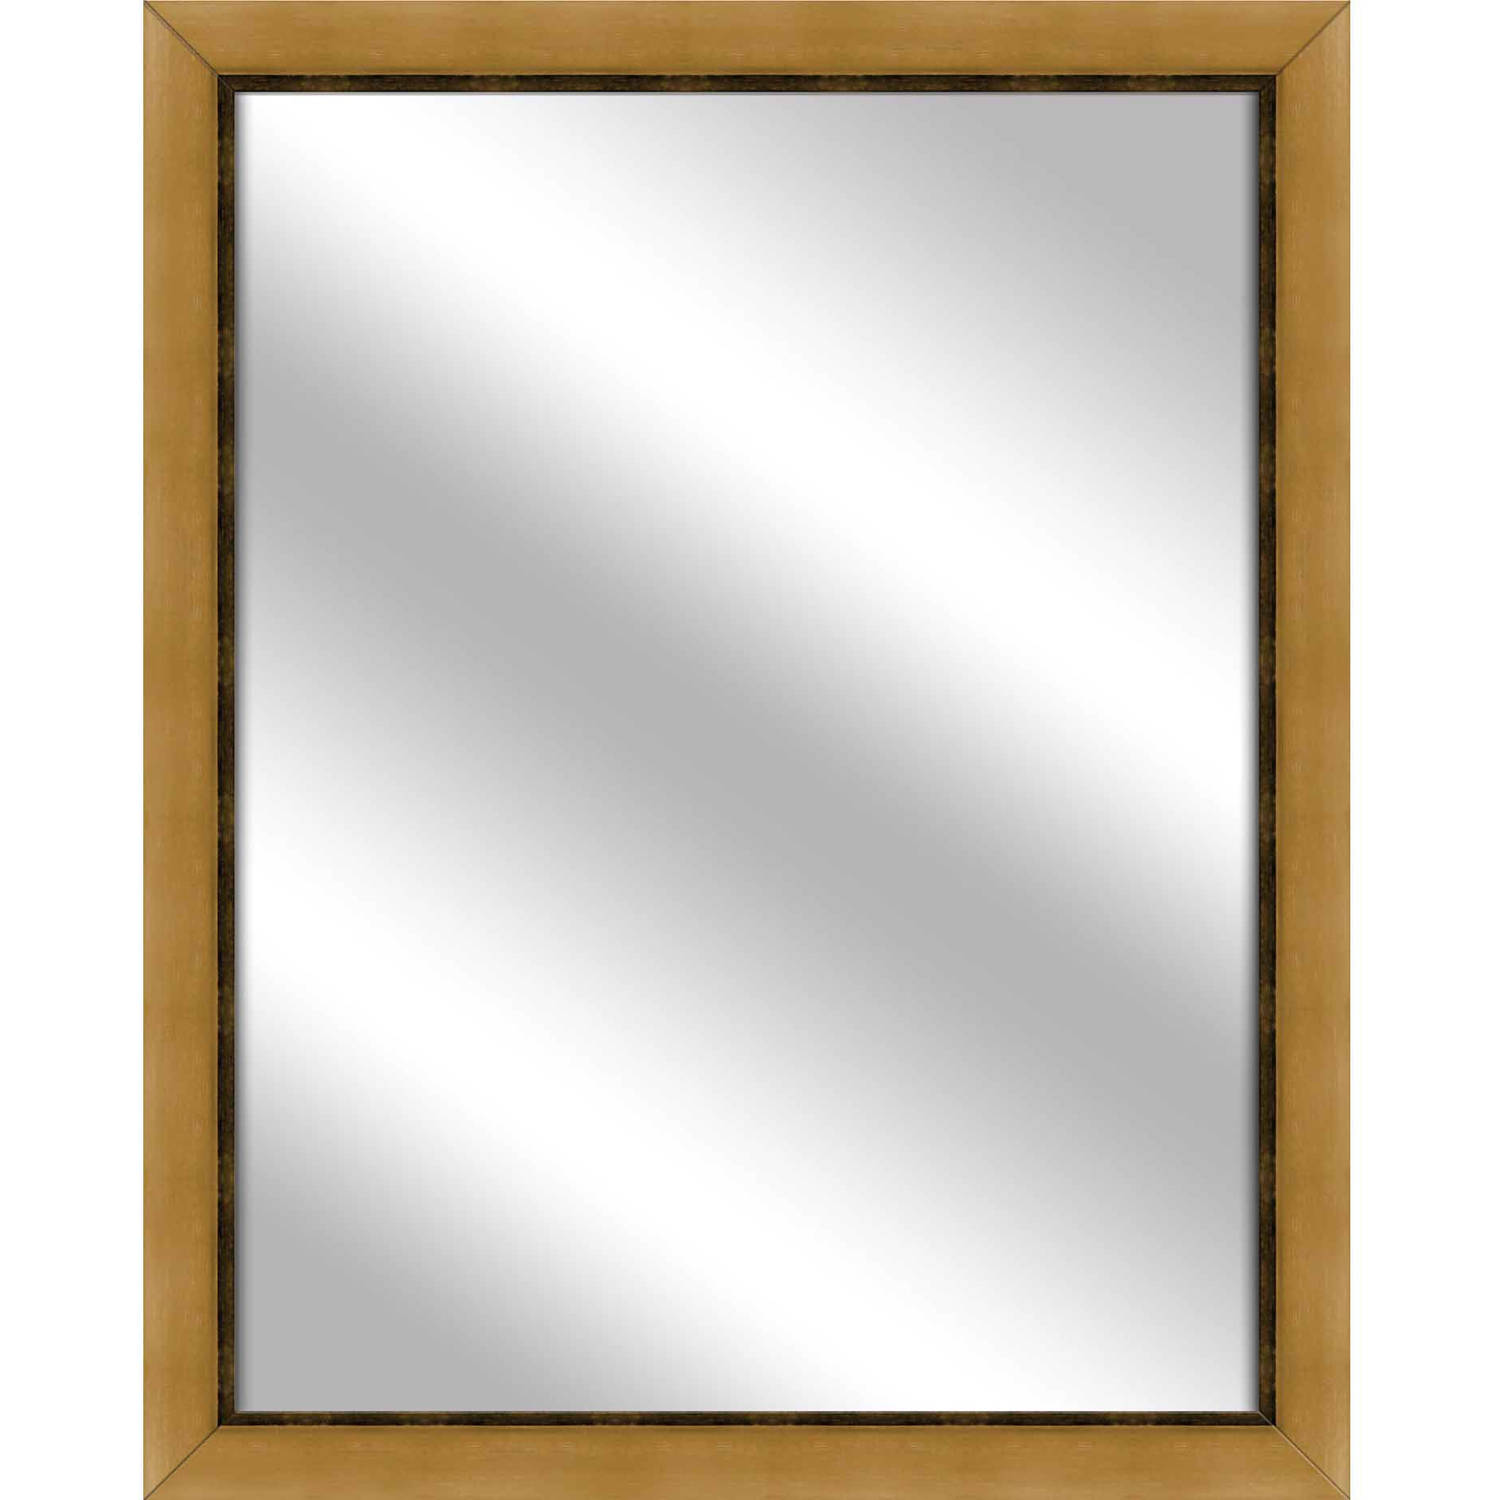 Vanity Mirror, Antique Gold, 24.75x30.75 by PTM Images